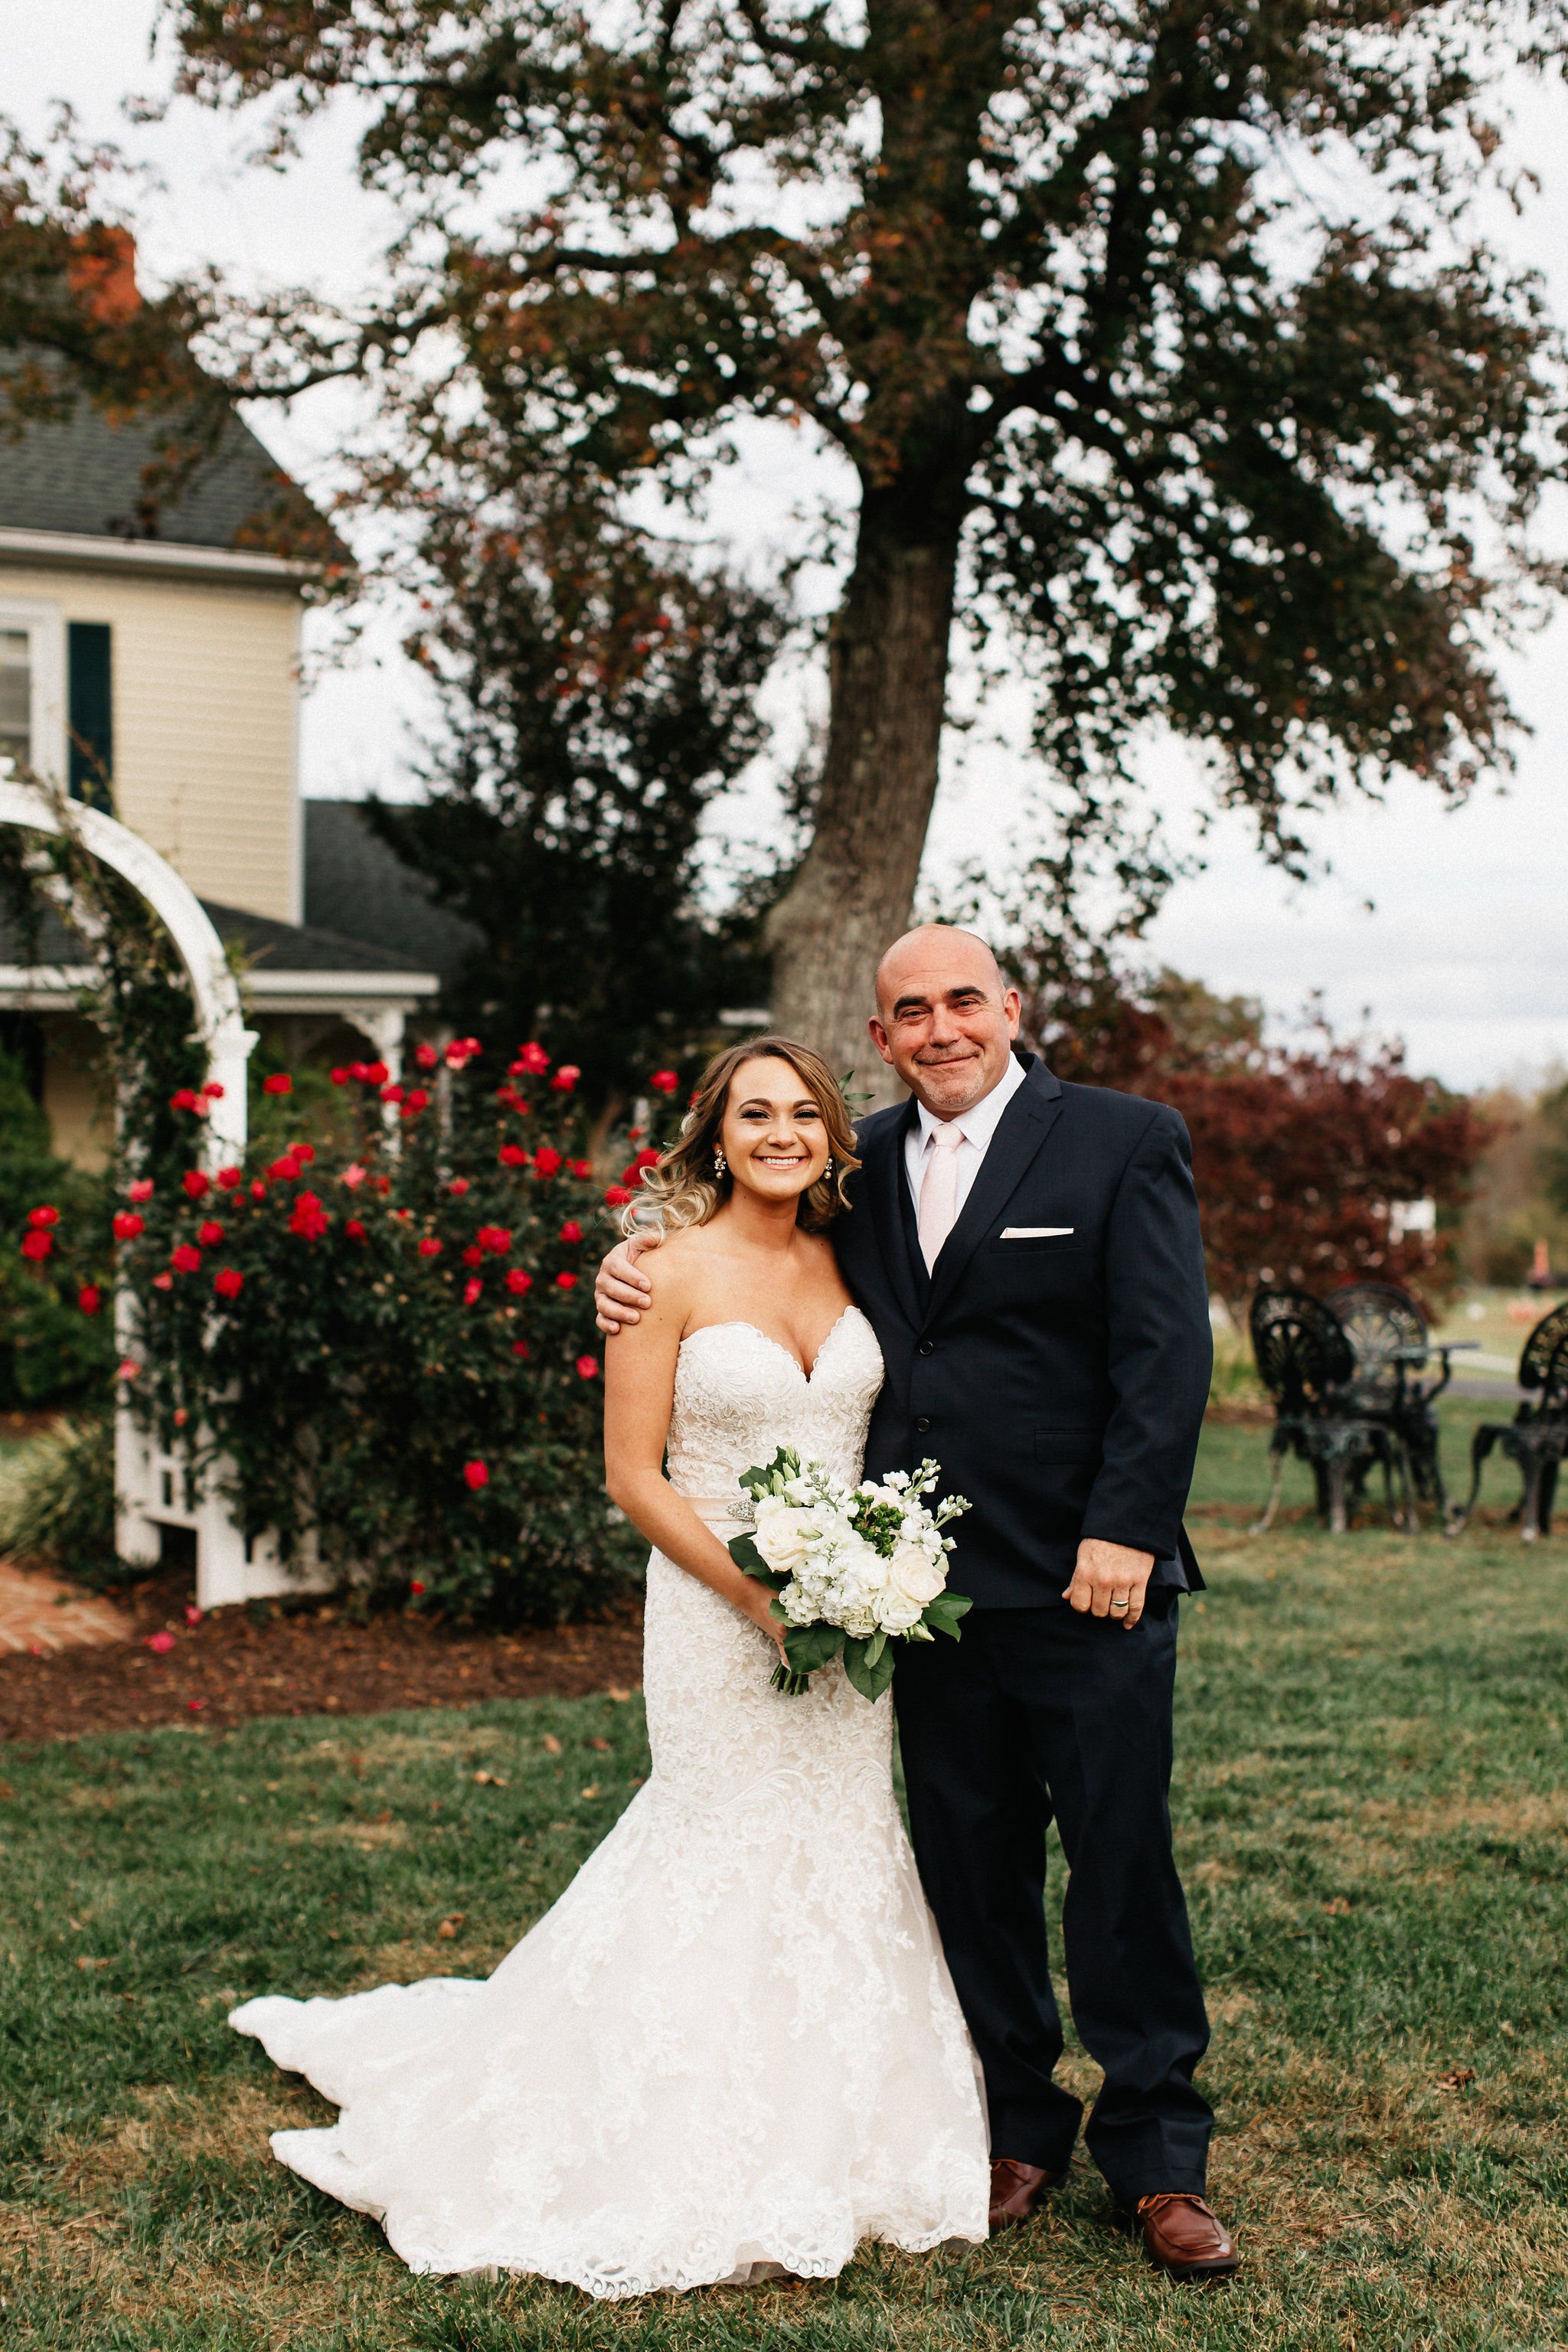 Ashley&NathanMarried2017-11-10at19.26.47PM166.jpg